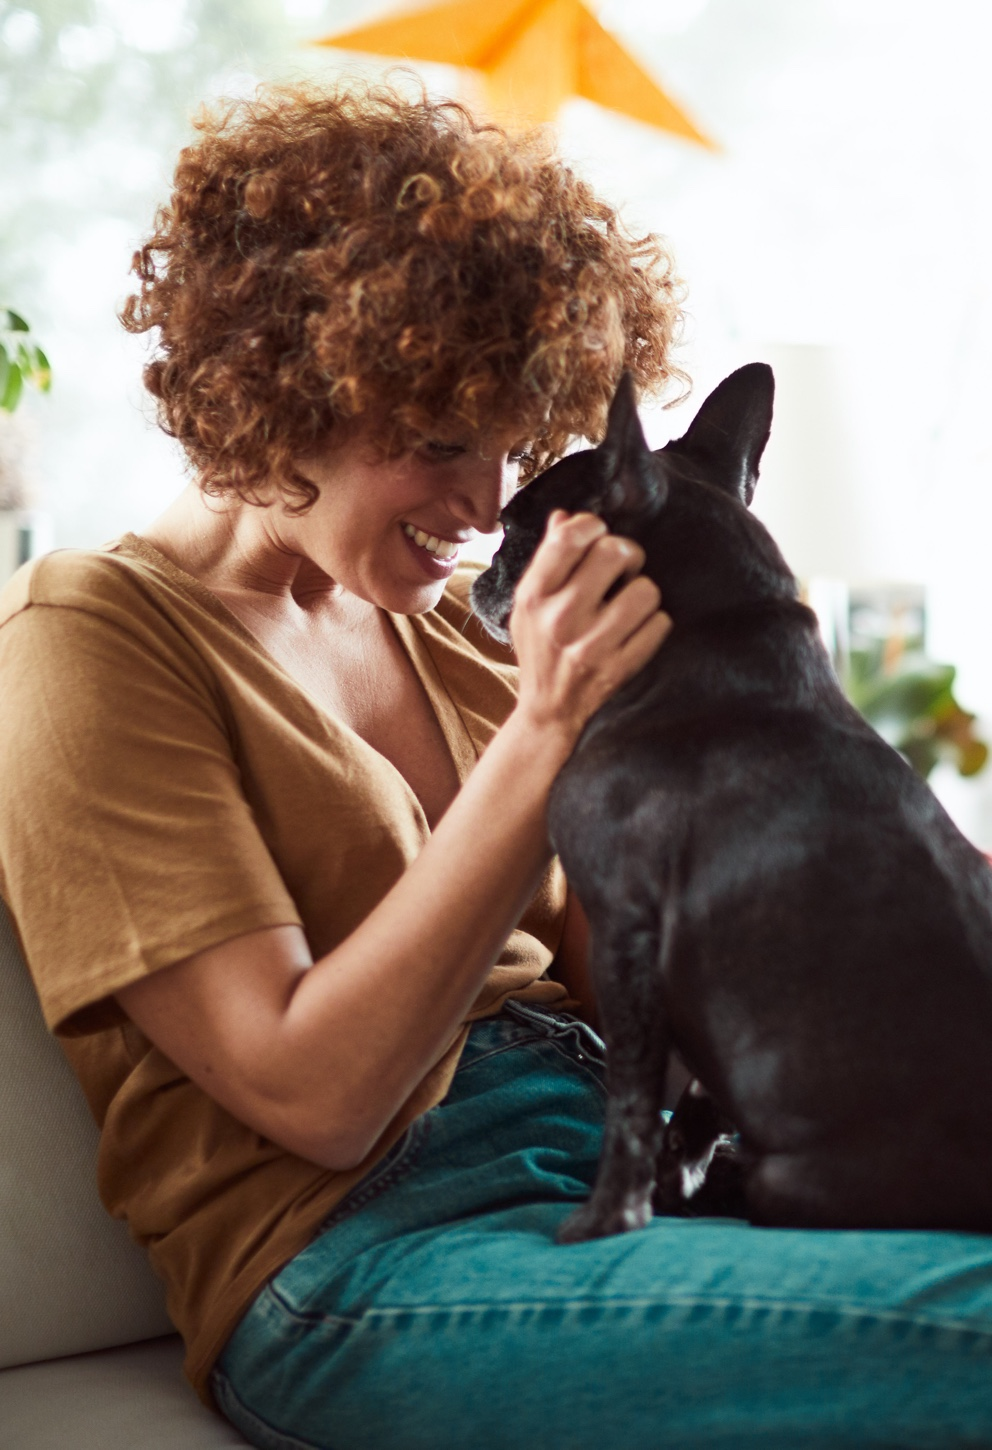 woman petting dog